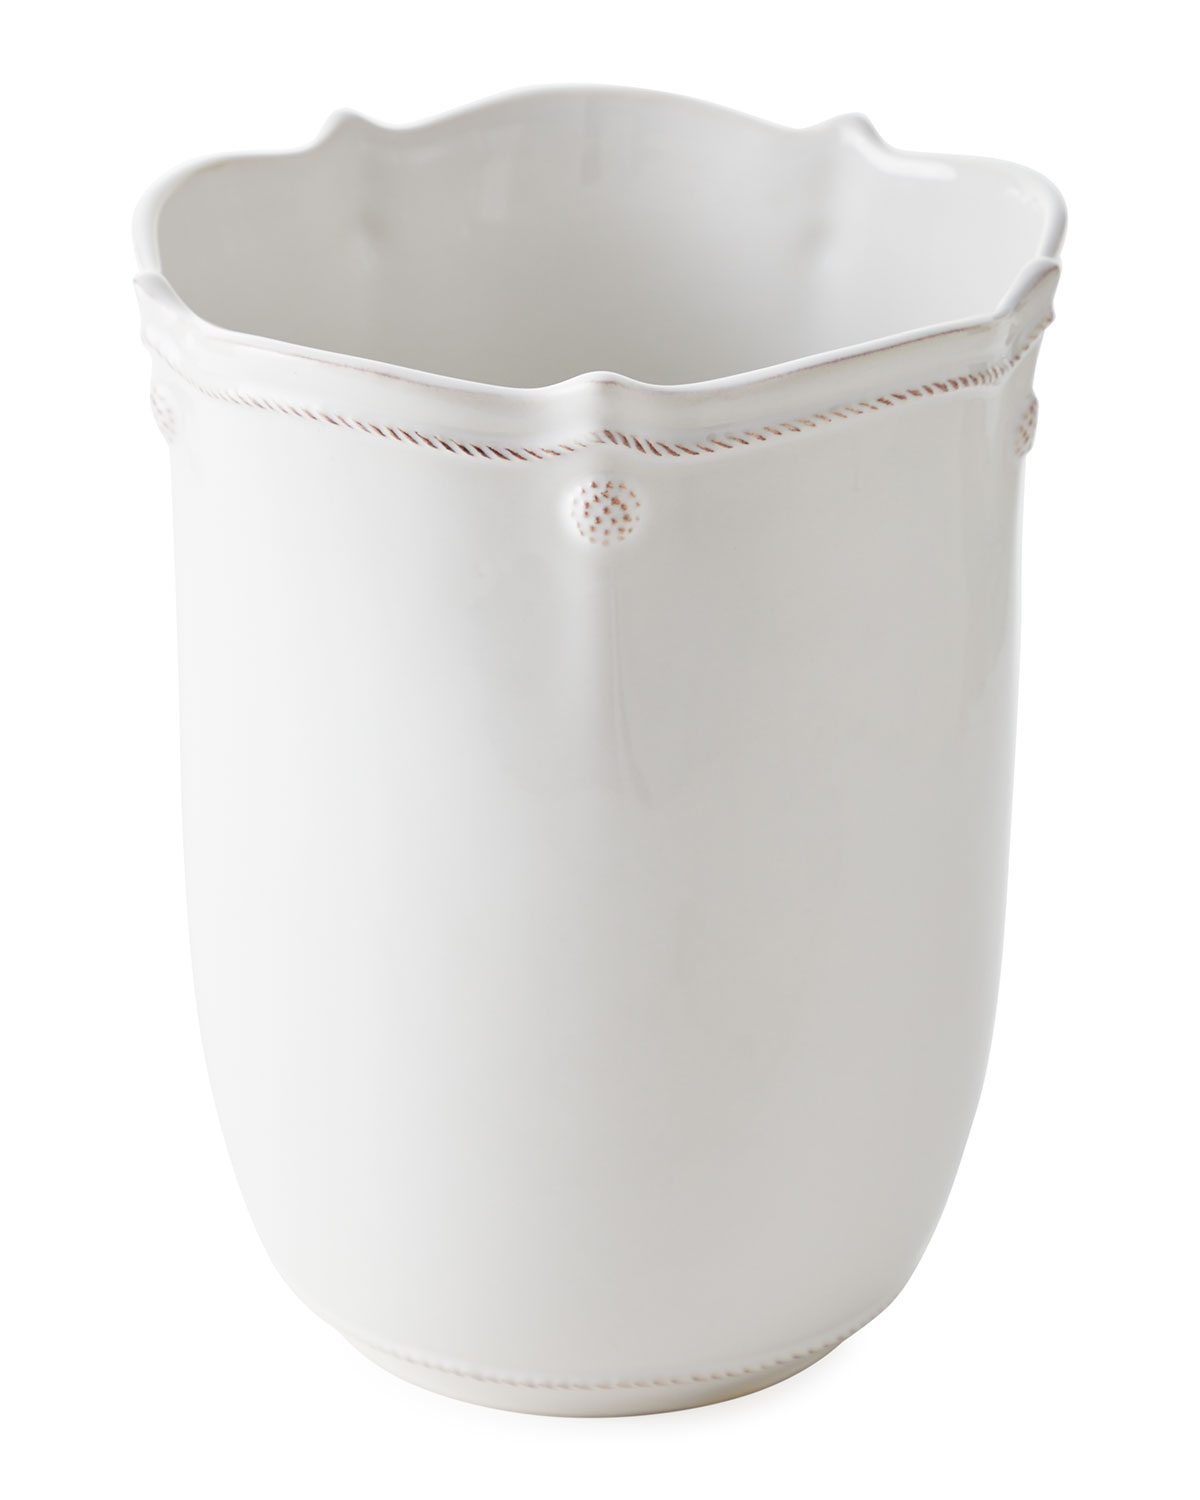 Juliska WASTEBASKET BERRY AND THREAD WHITEWASH